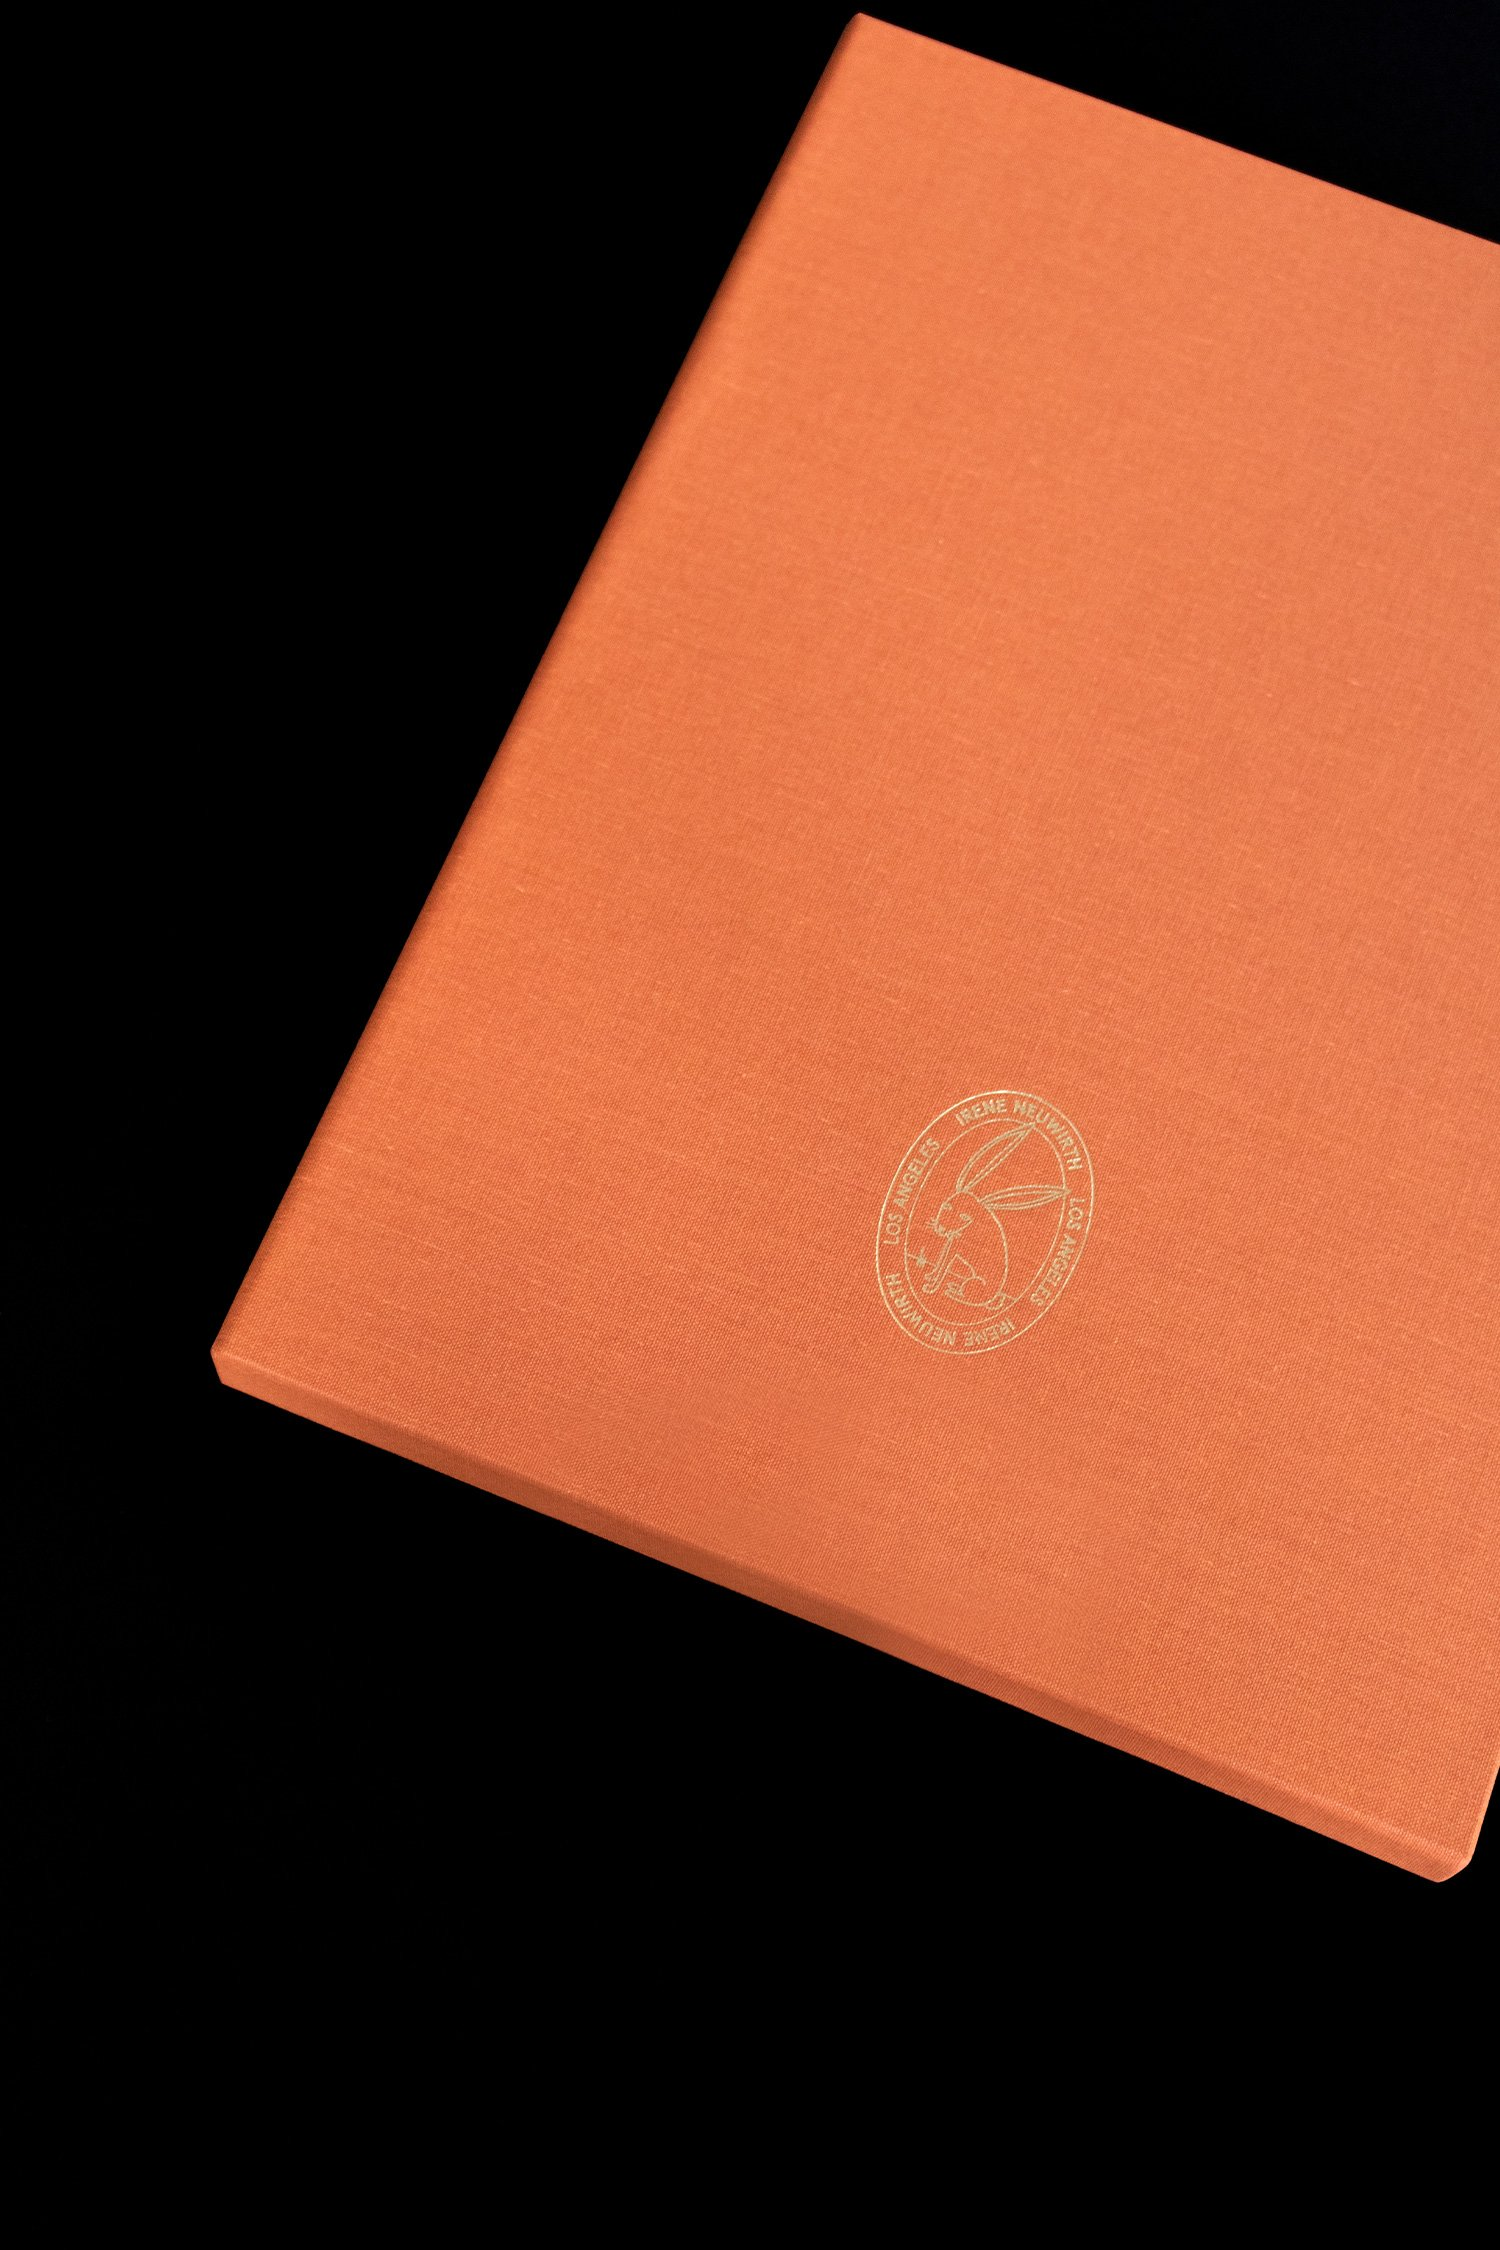 Close up of gold stamped bunny on the back of the Irene Neuwirth brand book. Art direction and print design by RoAndCo